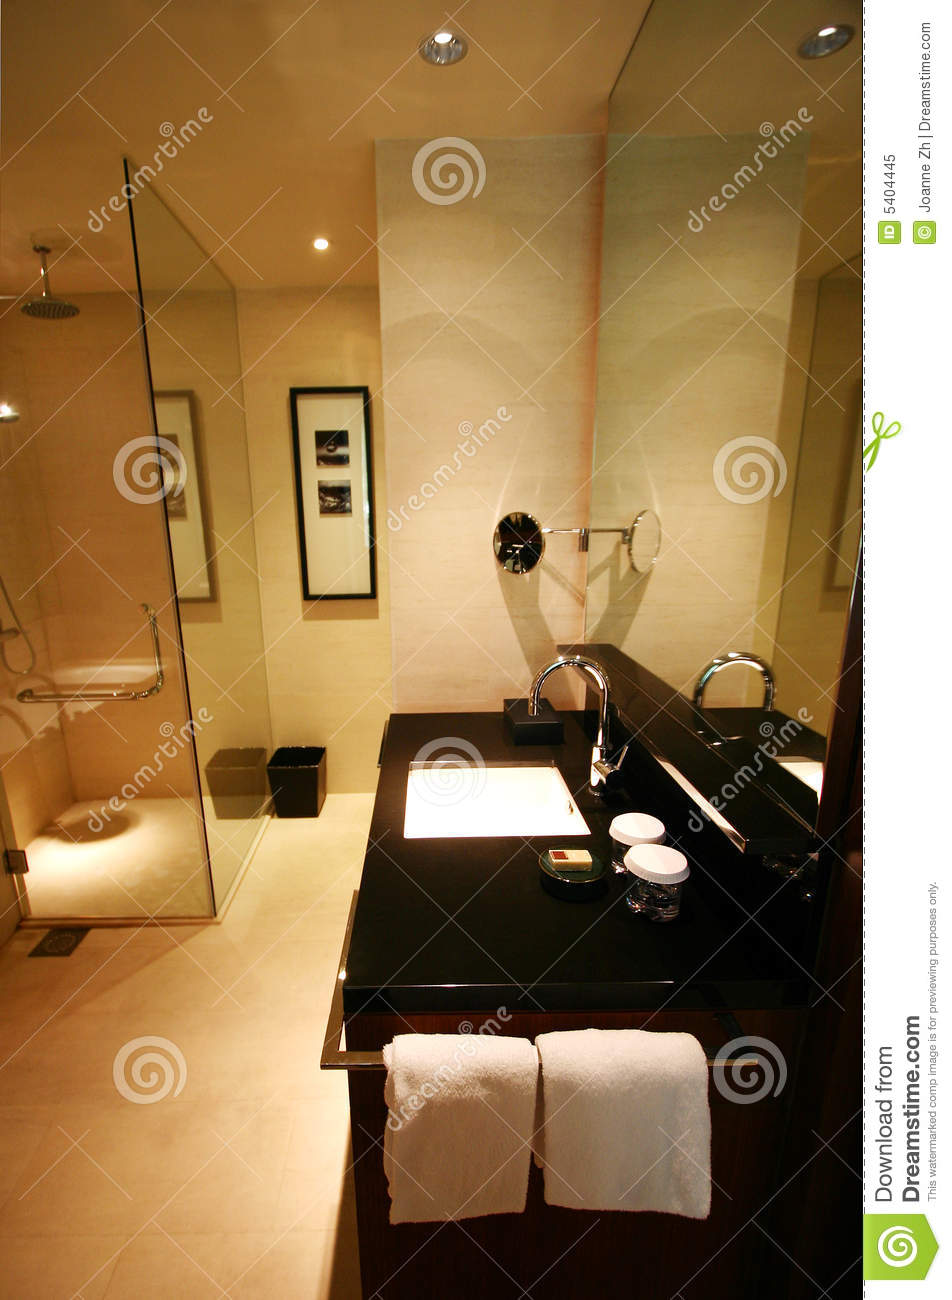 Black and white marble bathroom floor tiles - Bathroom Interior Of Brand New Luxury Resort Hotel Royalty